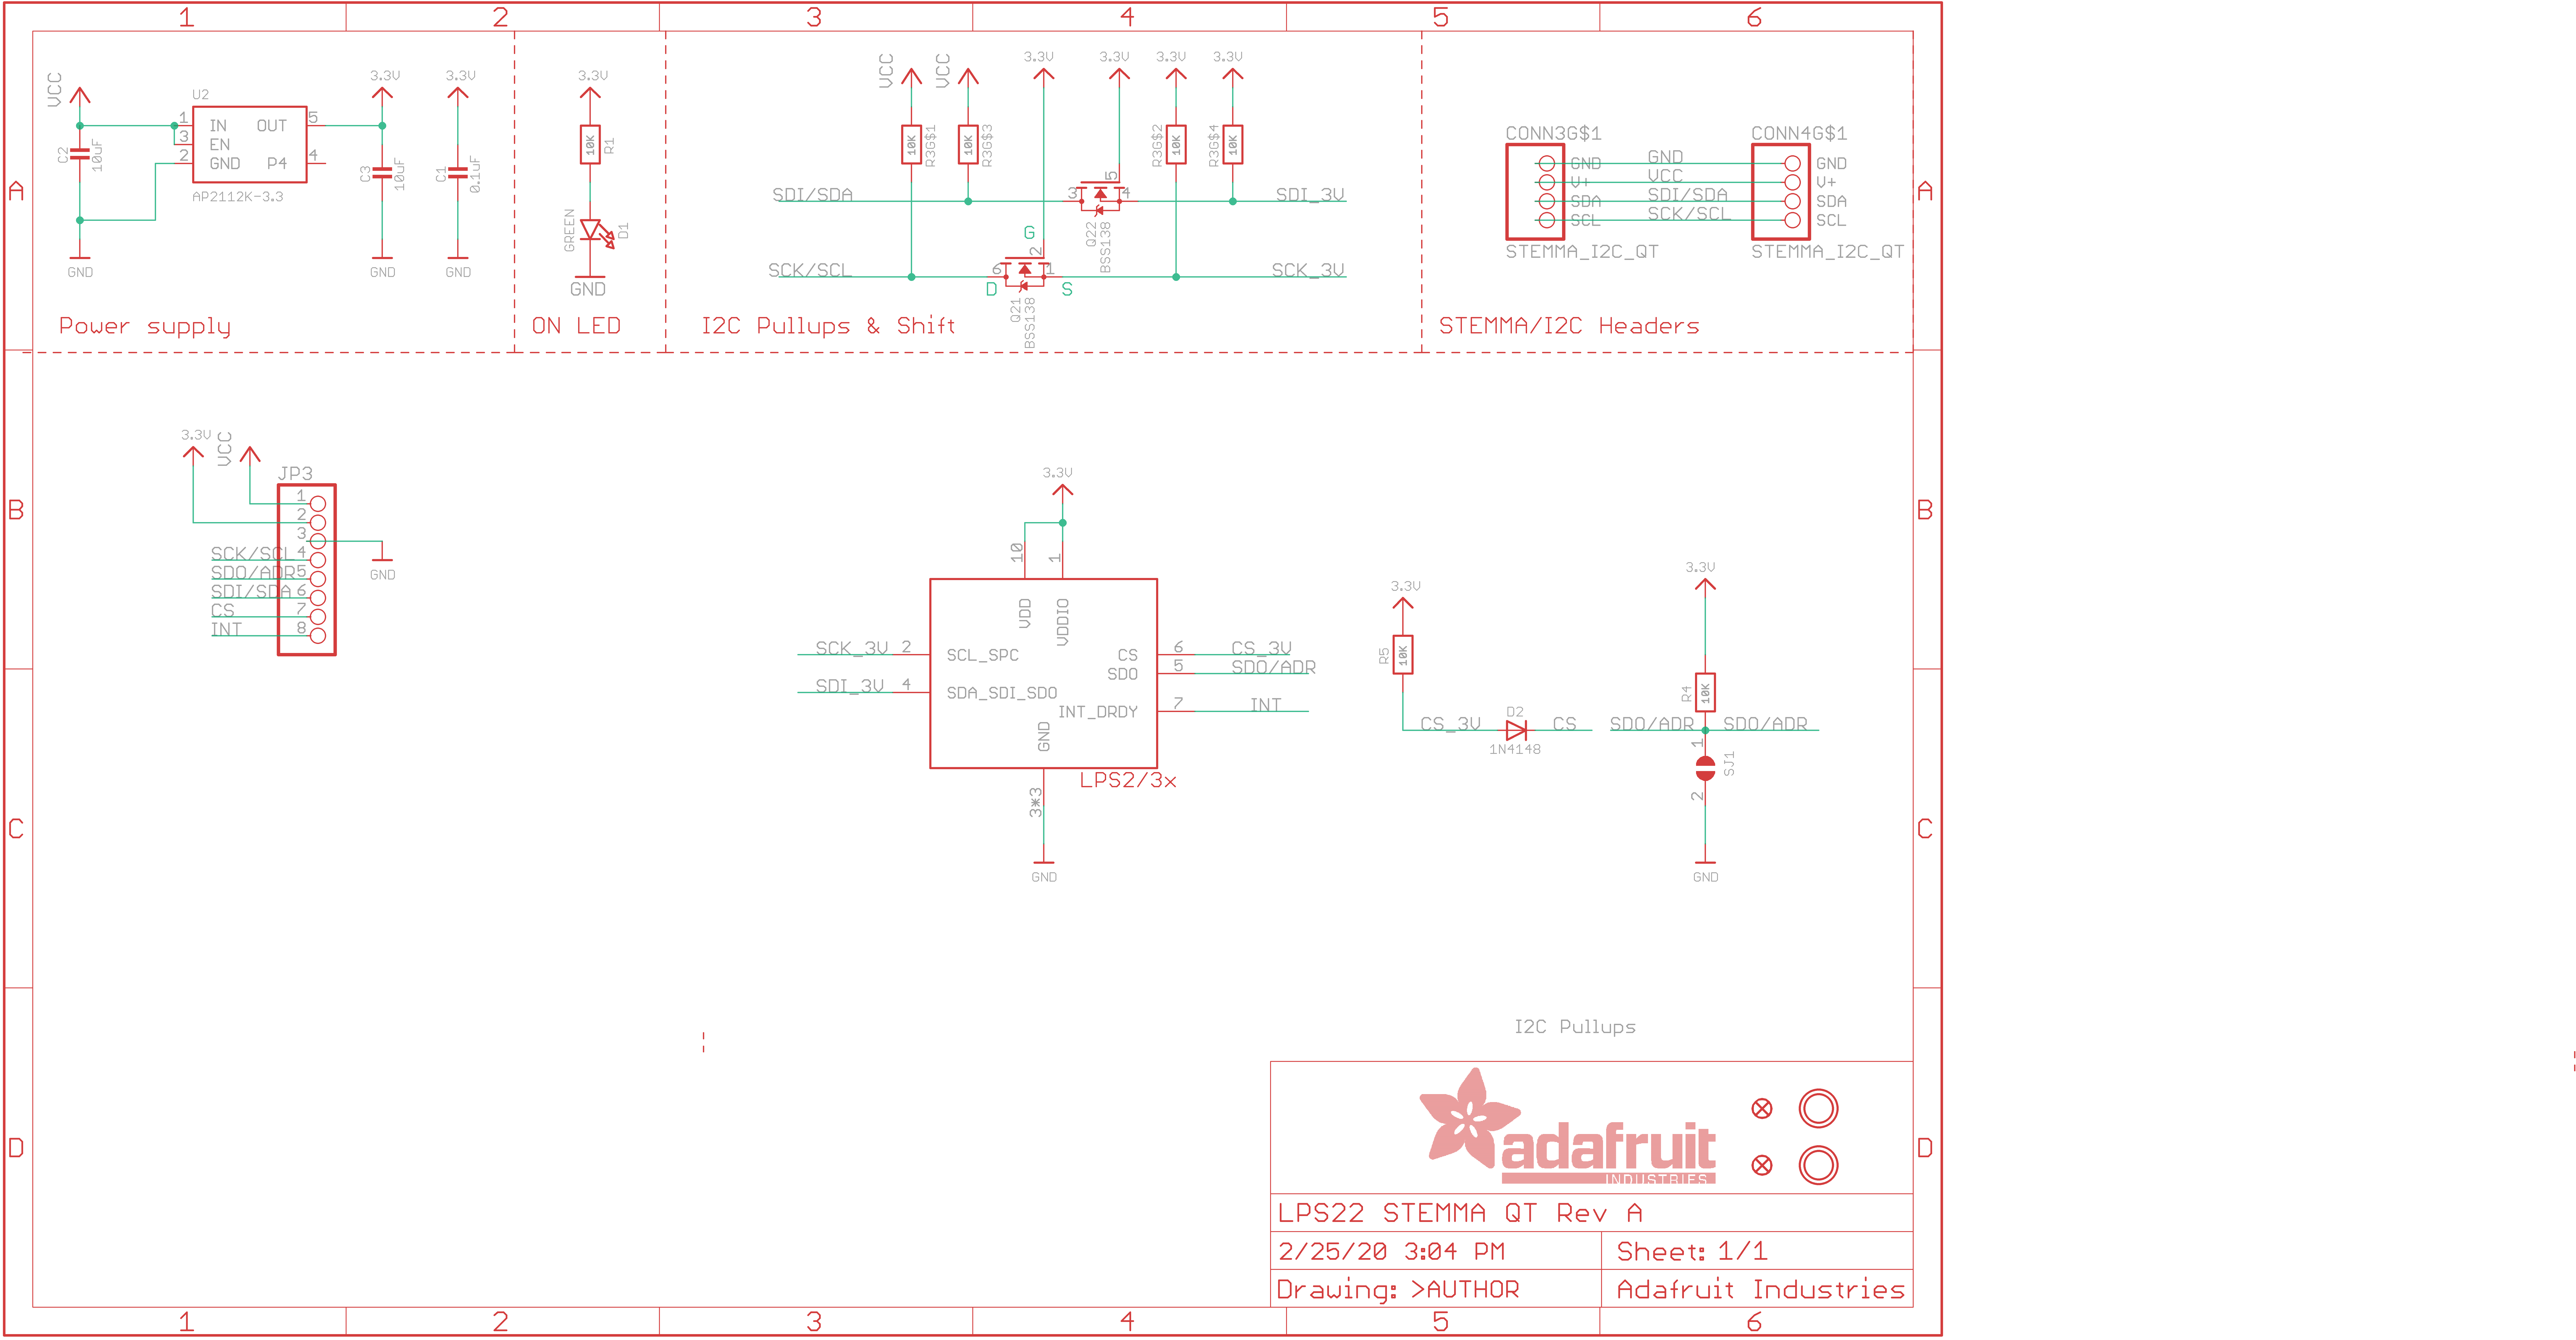 adafruit_products_f_downloads_schematic_lps22.png